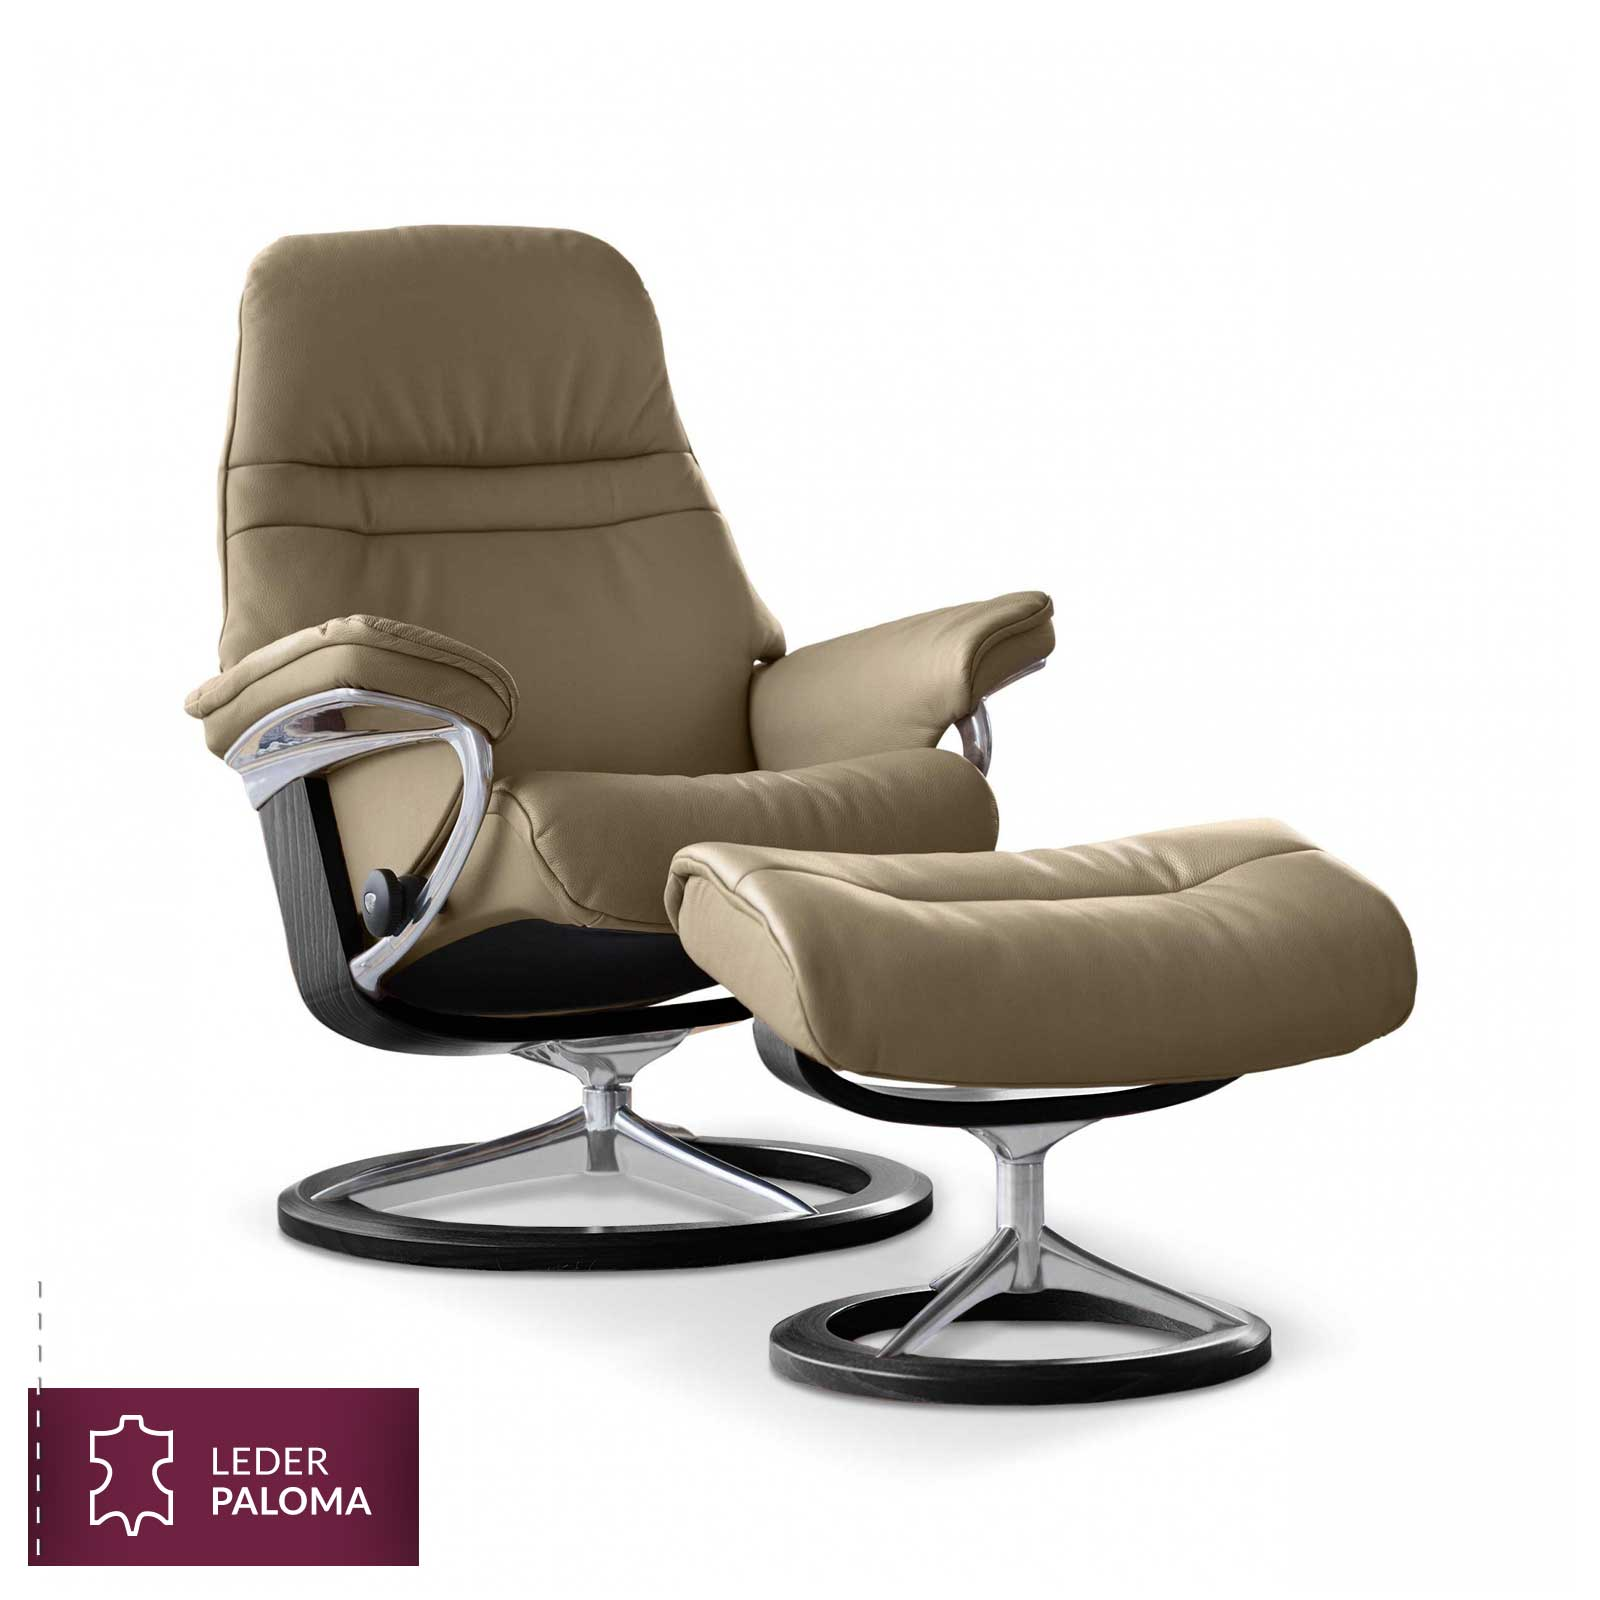 stressless sessel sunrise signature m paloma sand stressless. Black Bedroom Furniture Sets. Home Design Ideas